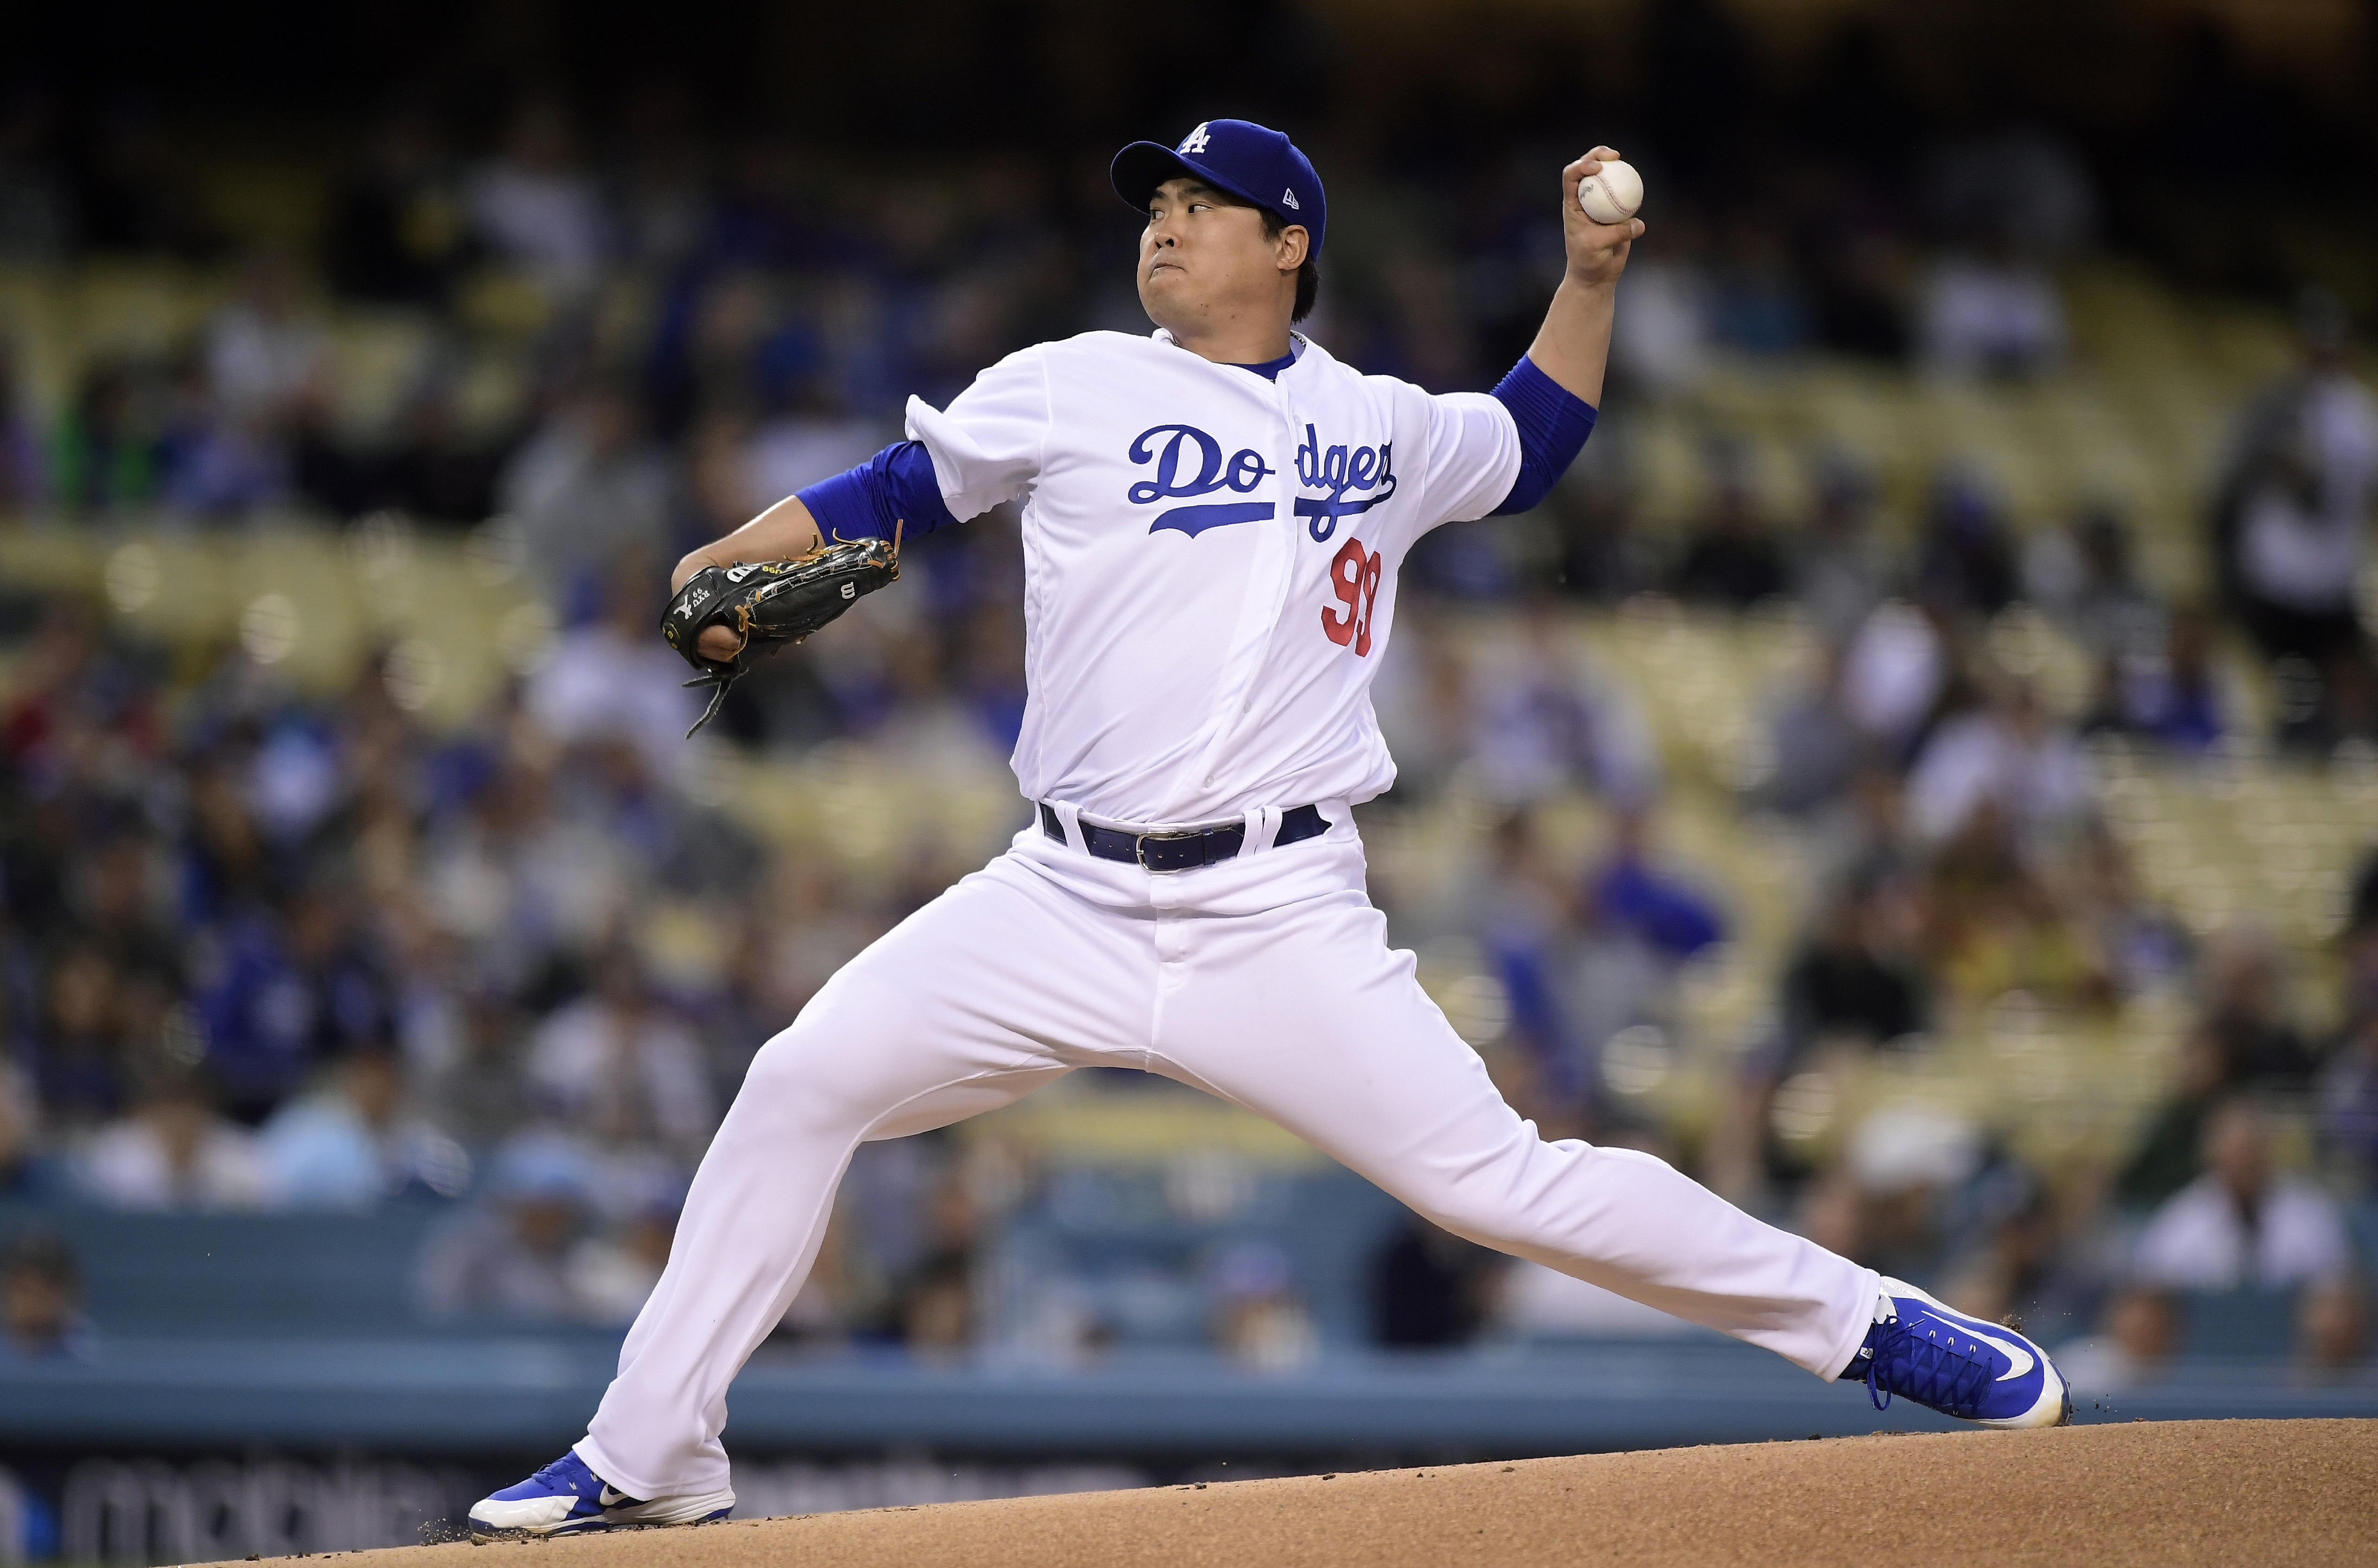 Ryu and Turner star in Dodgers' 9-0 win over Braves